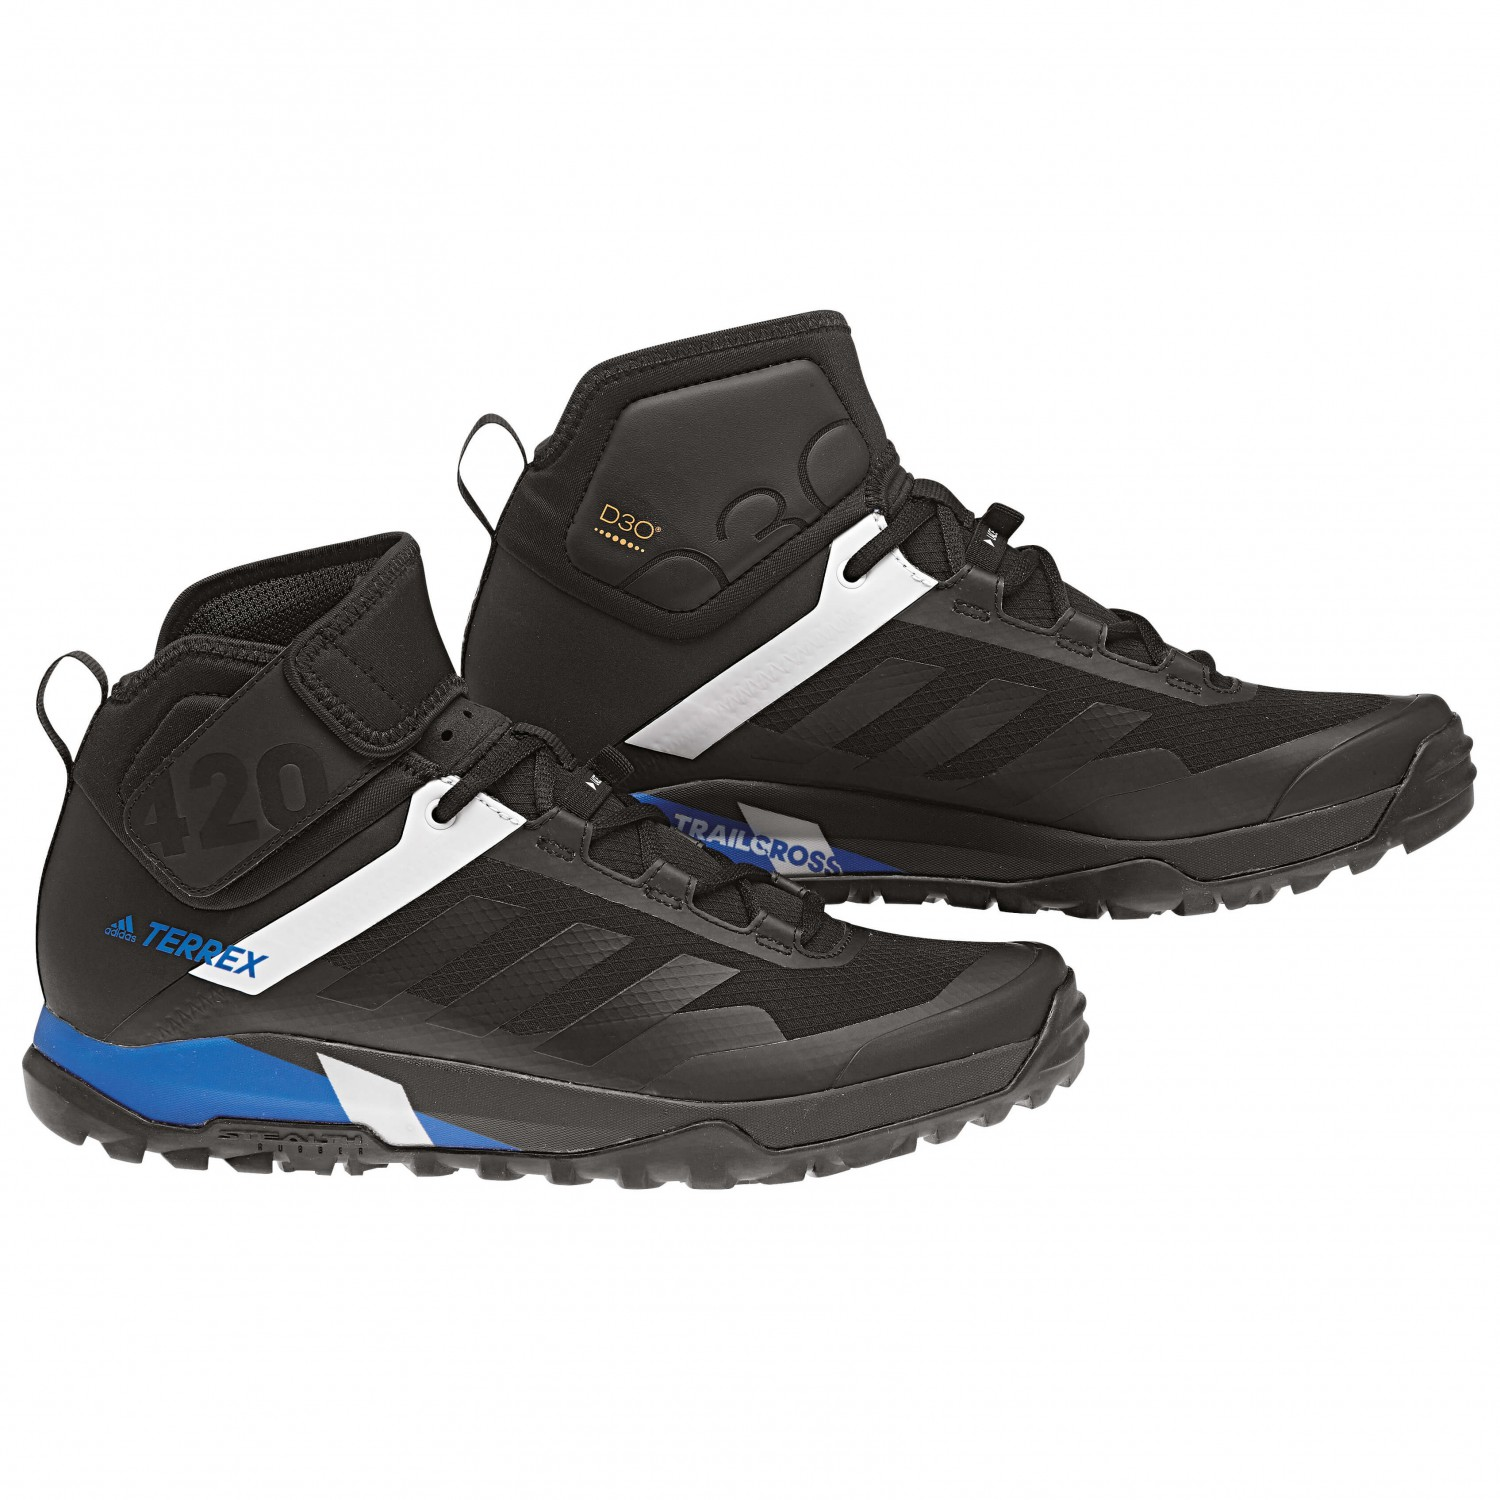 Adidas Terrex Trail Cross Sko